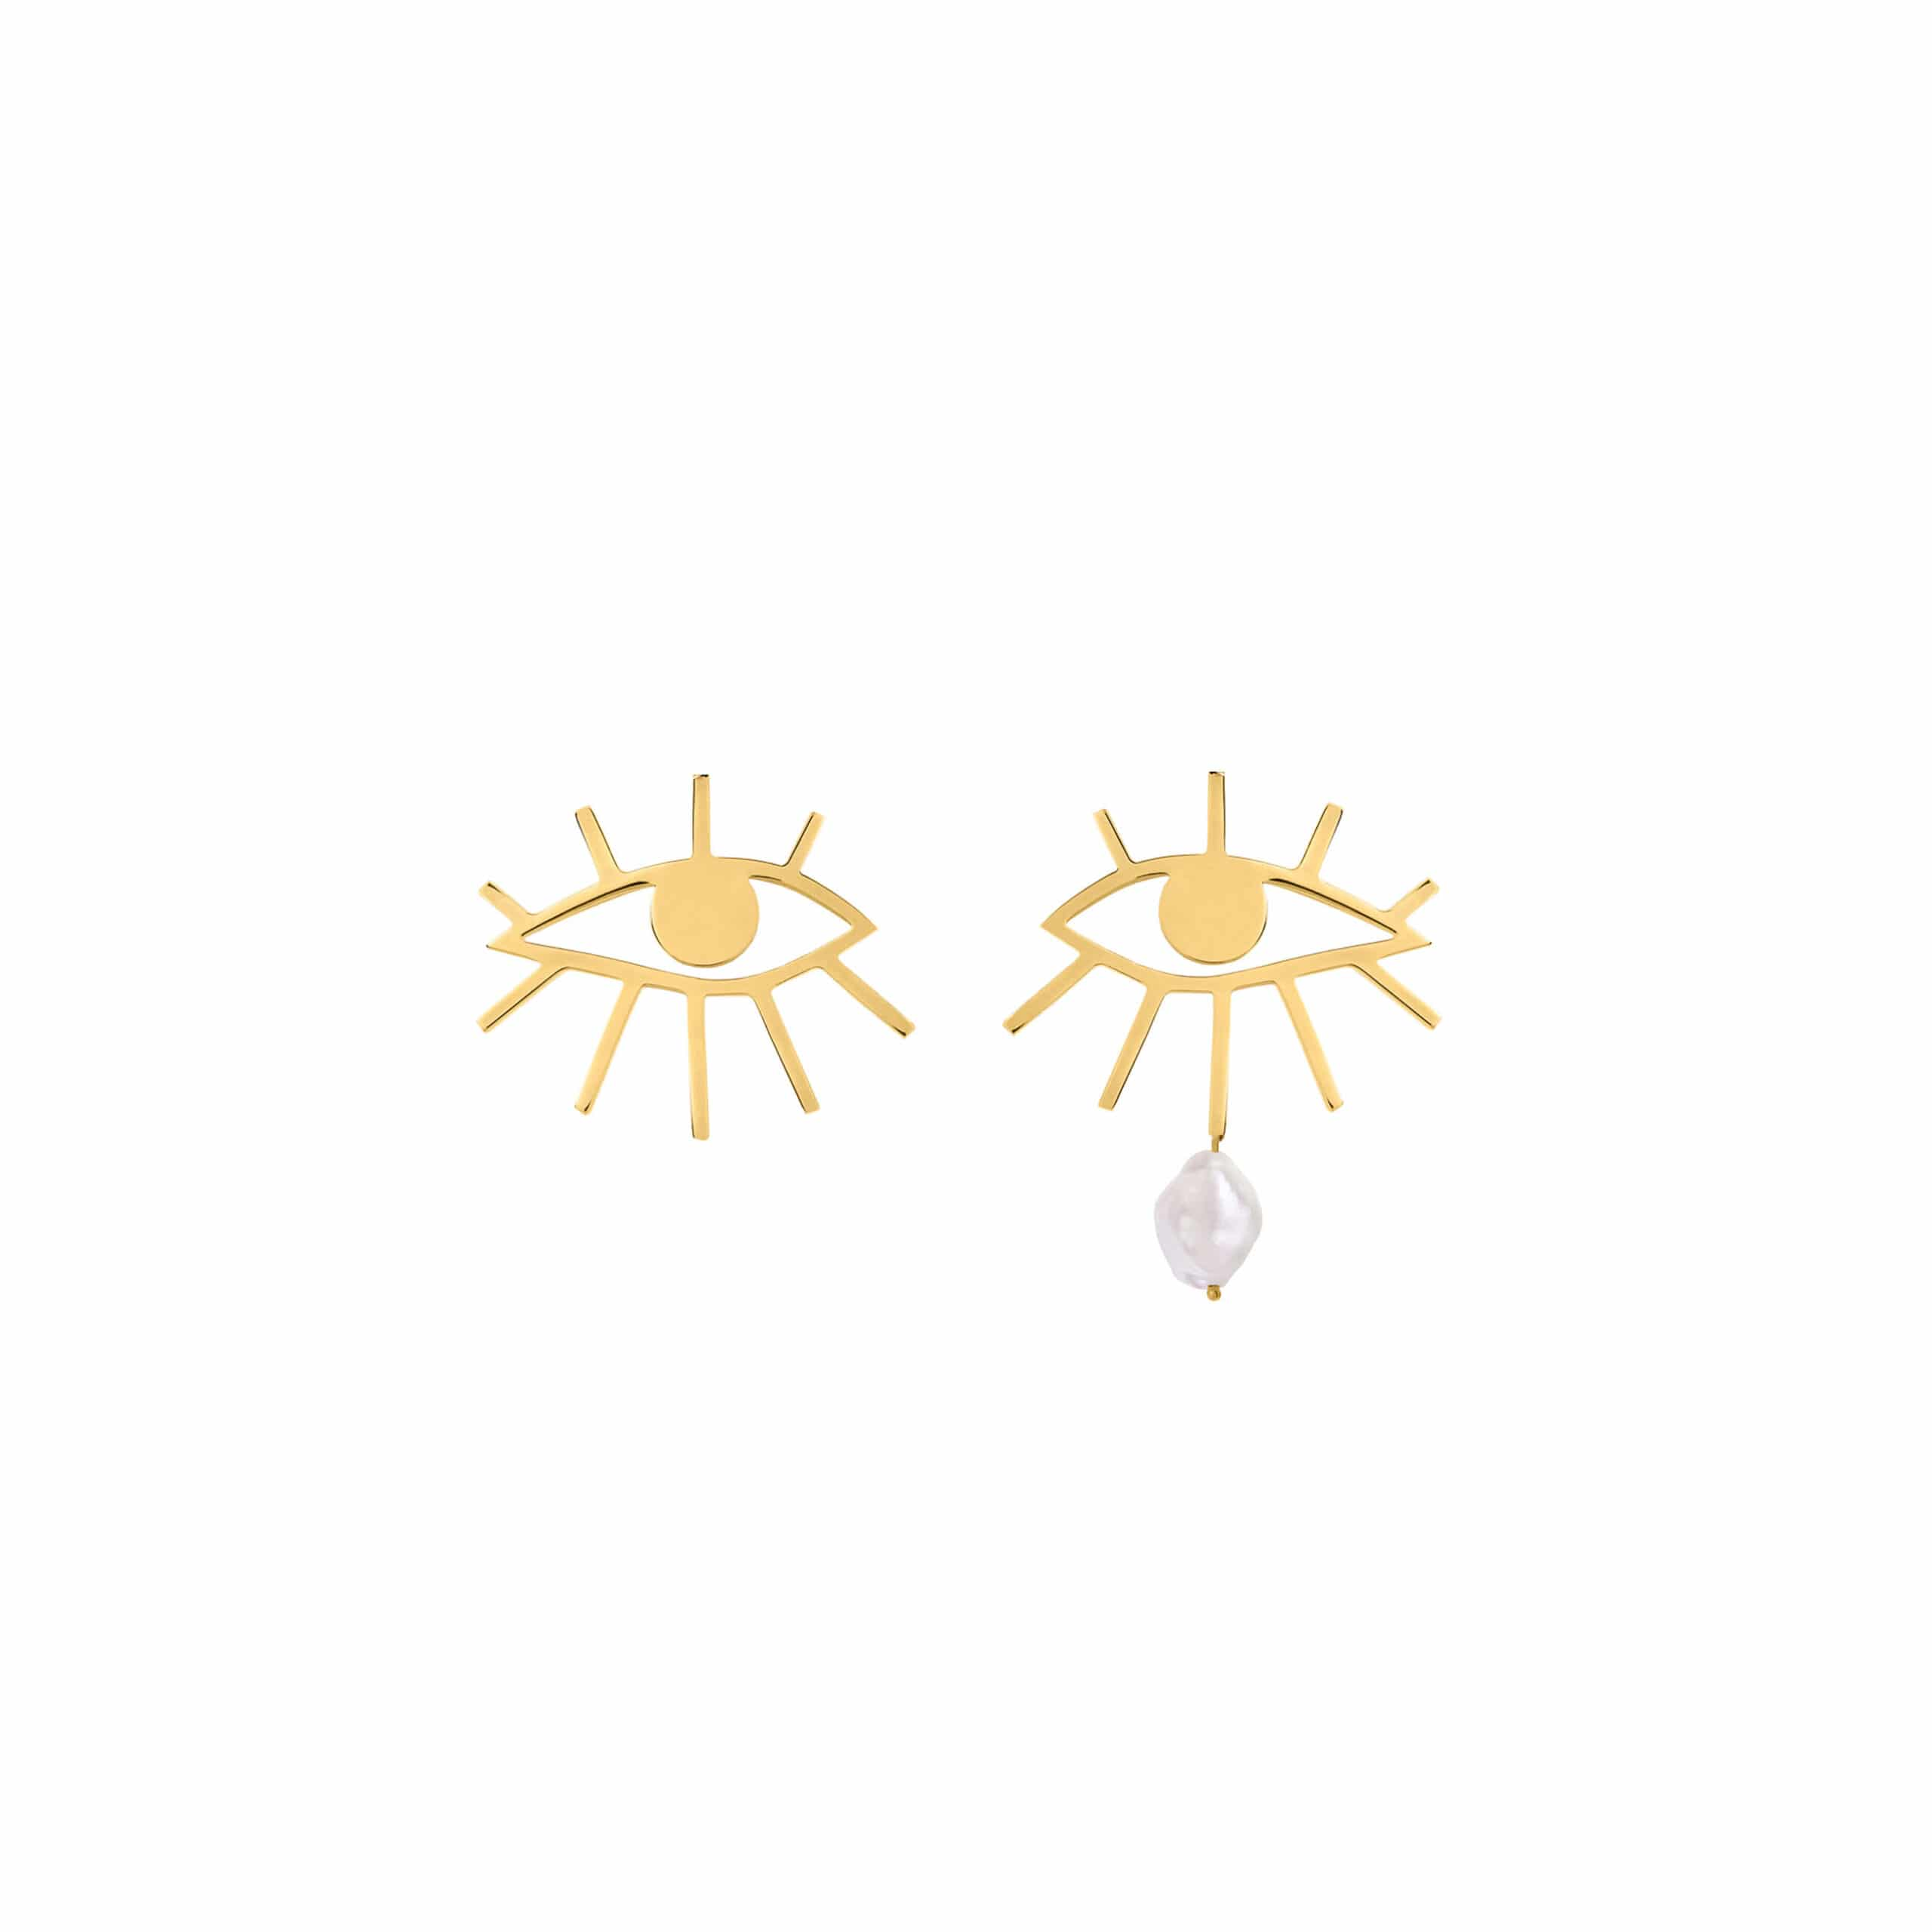 eyes earrings / limited edition